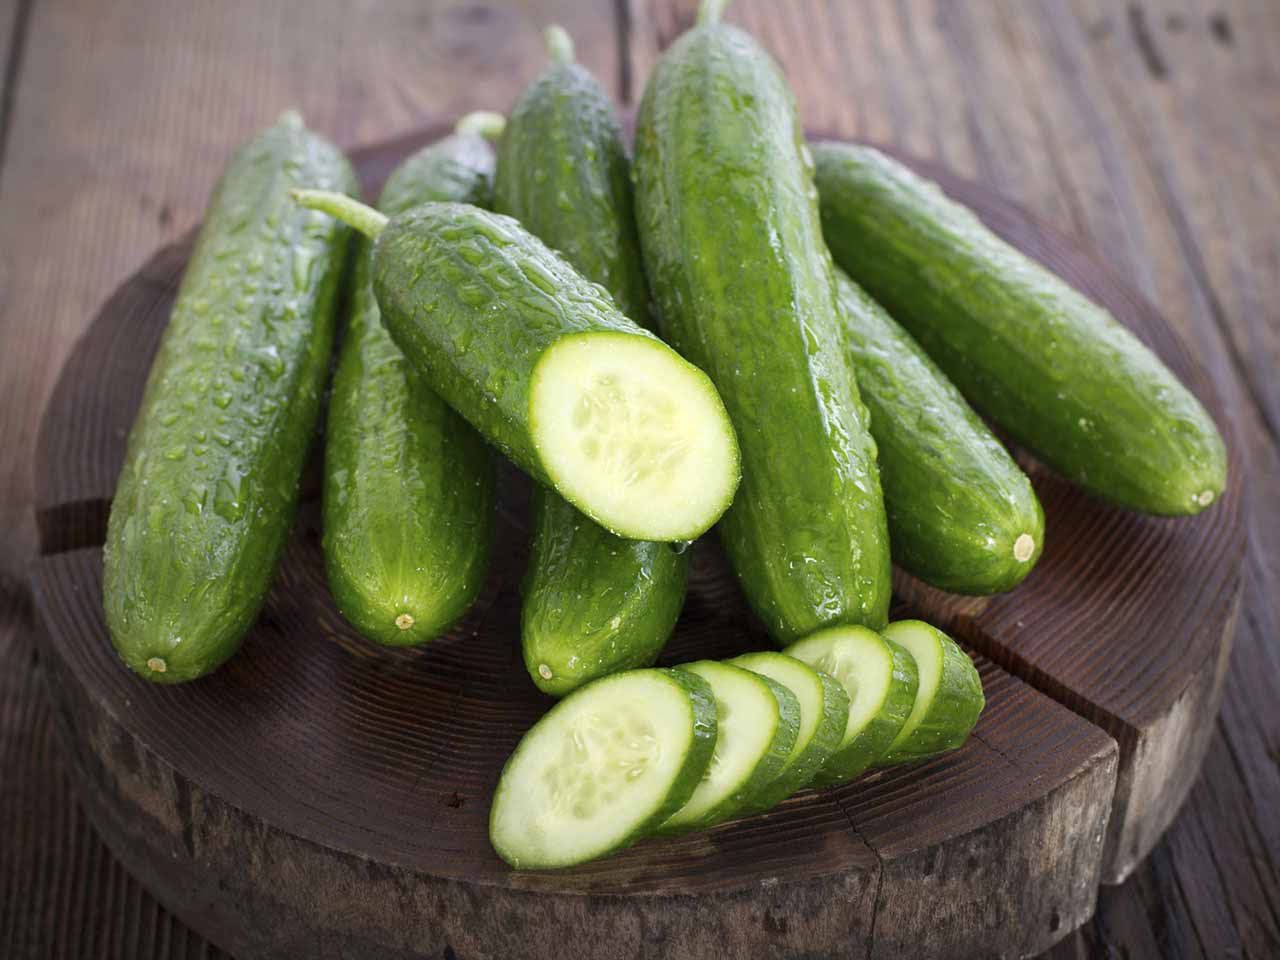 Cucumbers on wooden preparation board